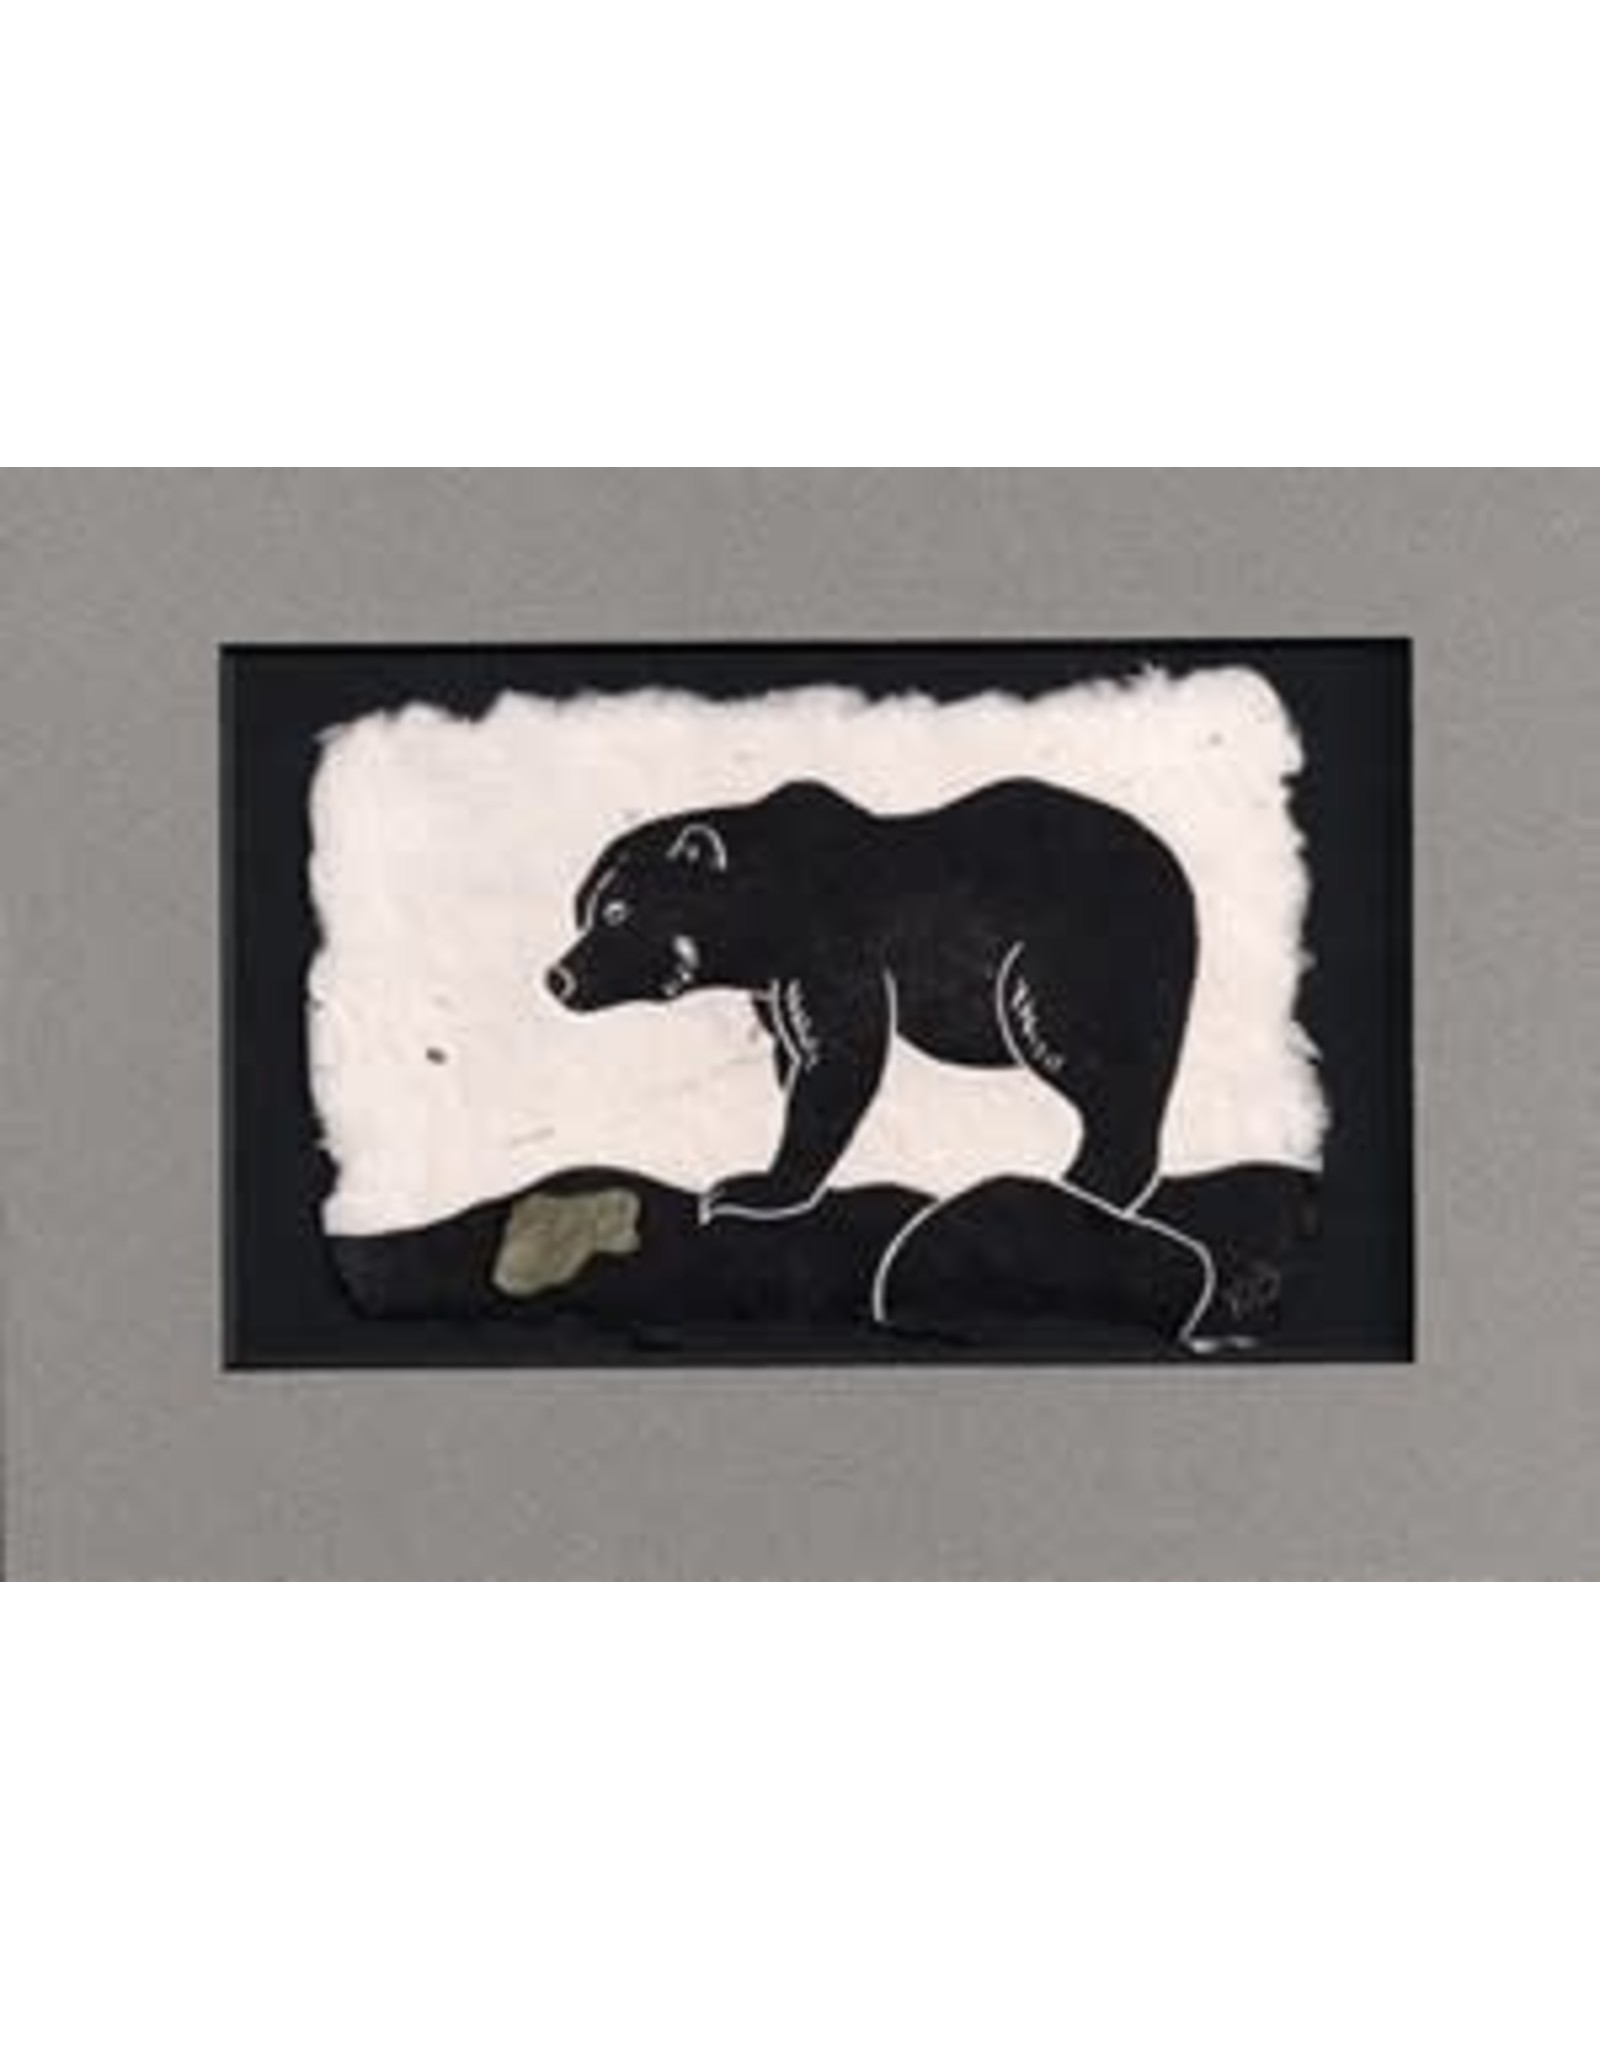 KB's Handmade Creations Brown Bear (framed) | Karen Beason